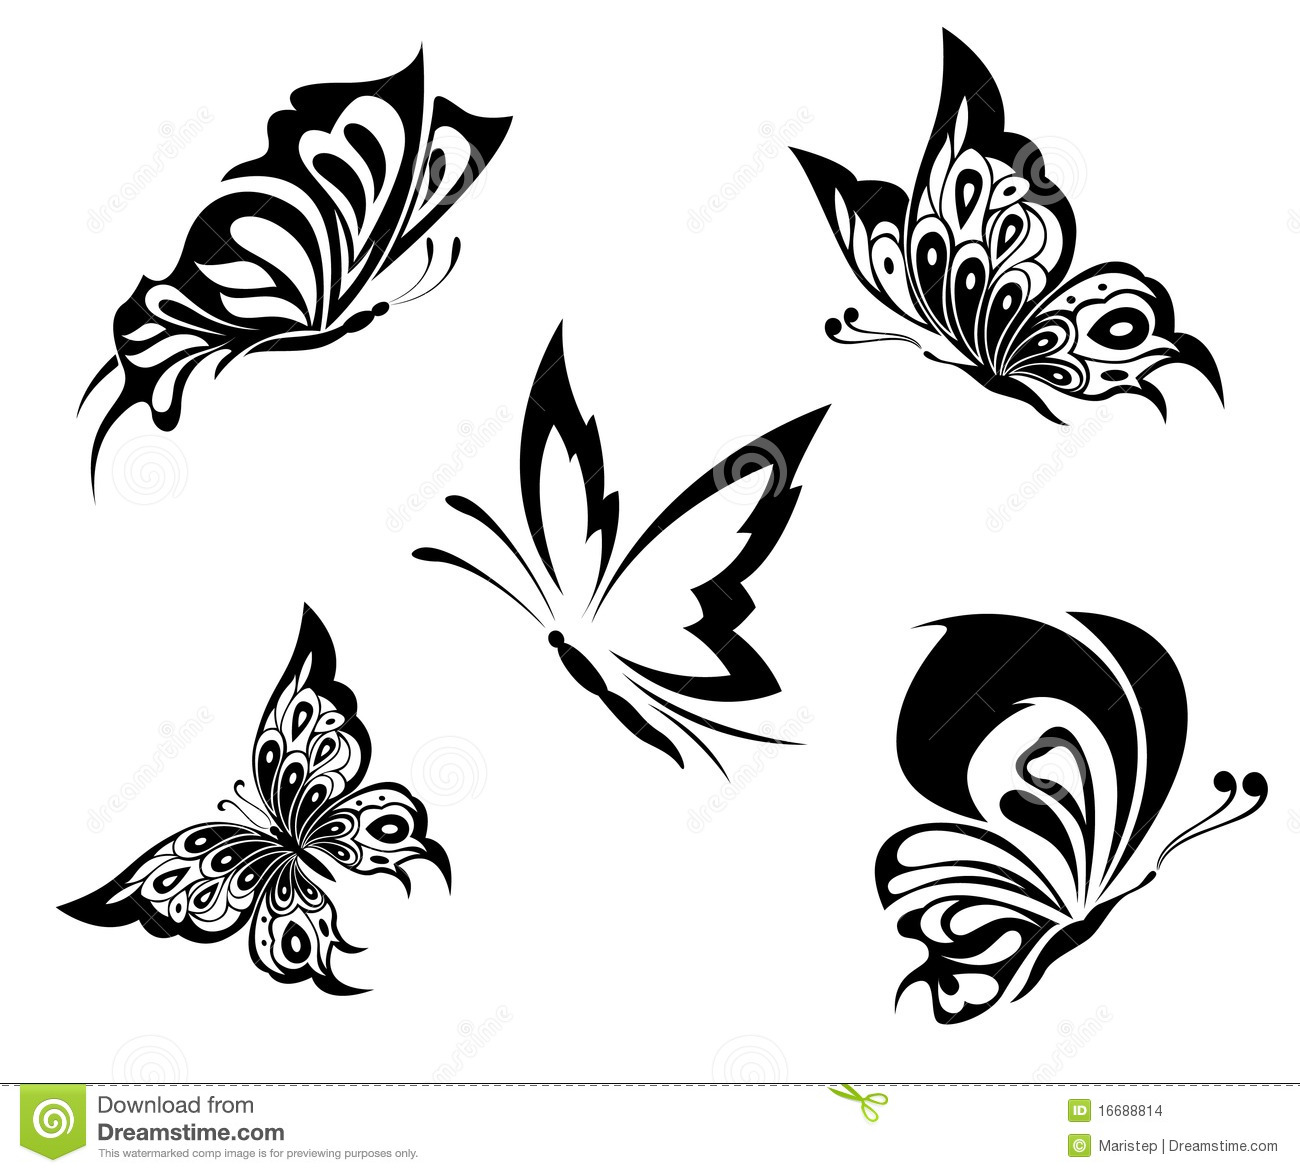 81fa7c628bd04 Black White Butterflies Of A Tattoo Stock Vector - Illustration of ...